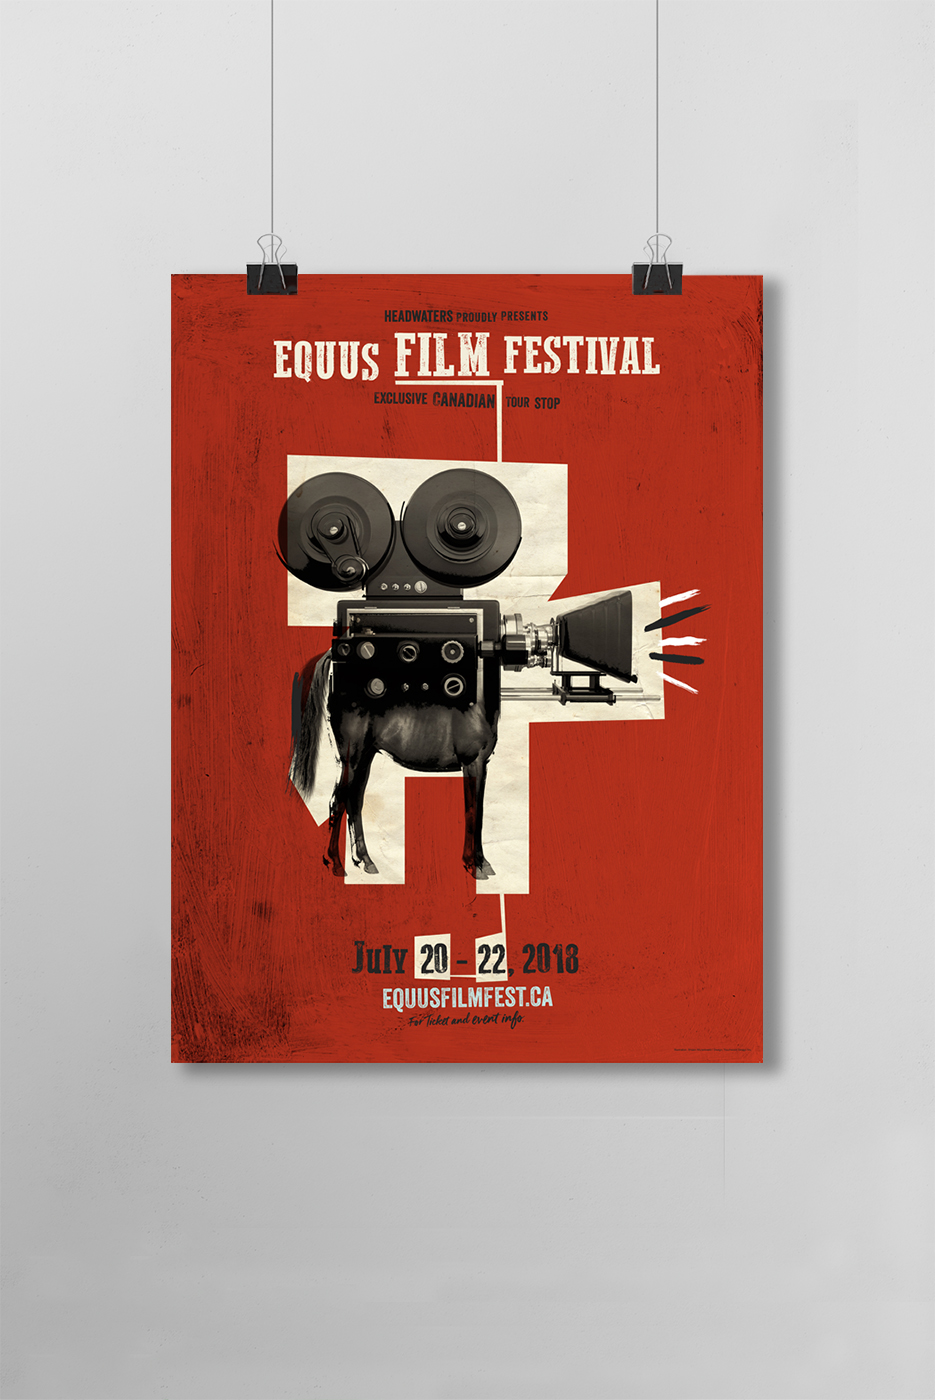 Poster design for Equus Film Festival in July 2018. Features collage art with a horse and a film camera.